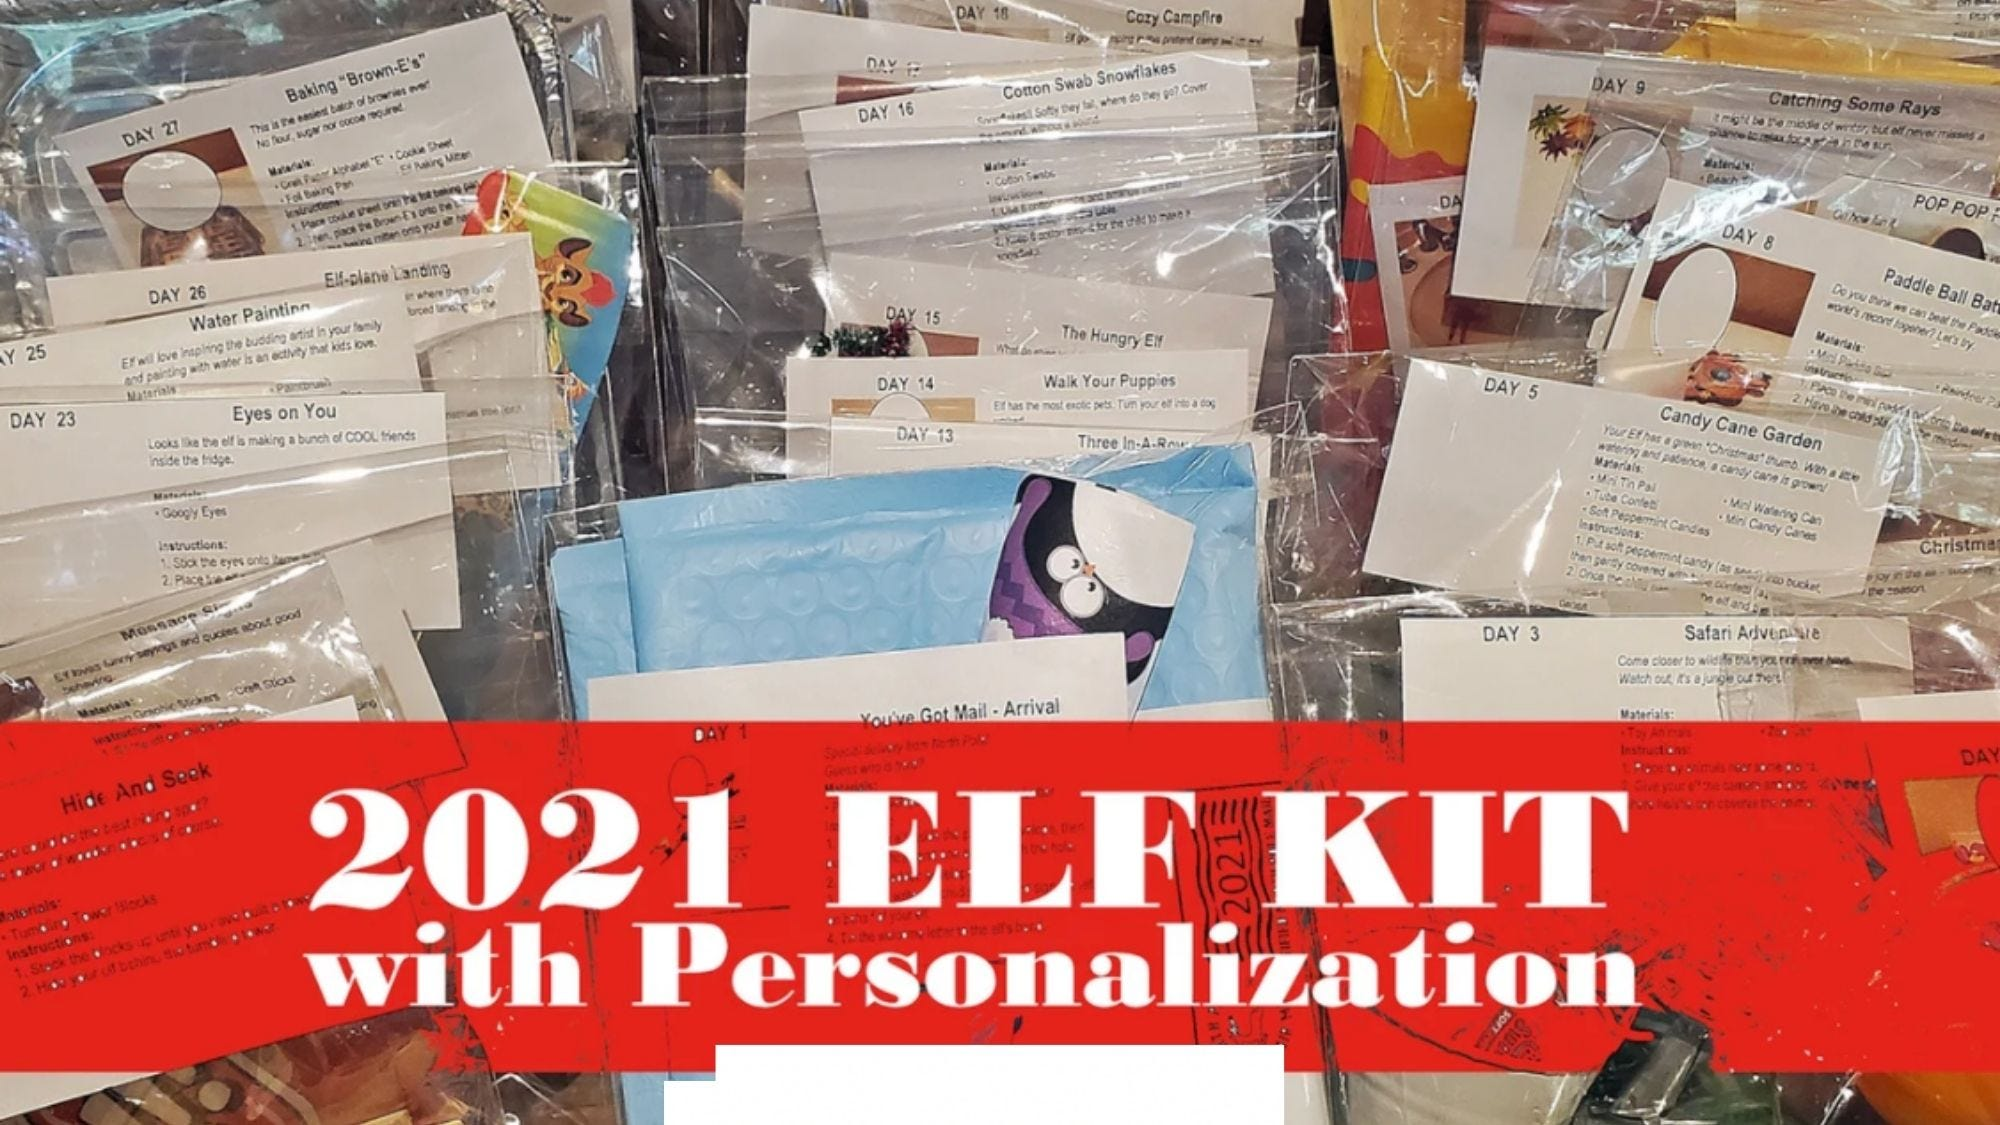 This elf kit can be completely customized!